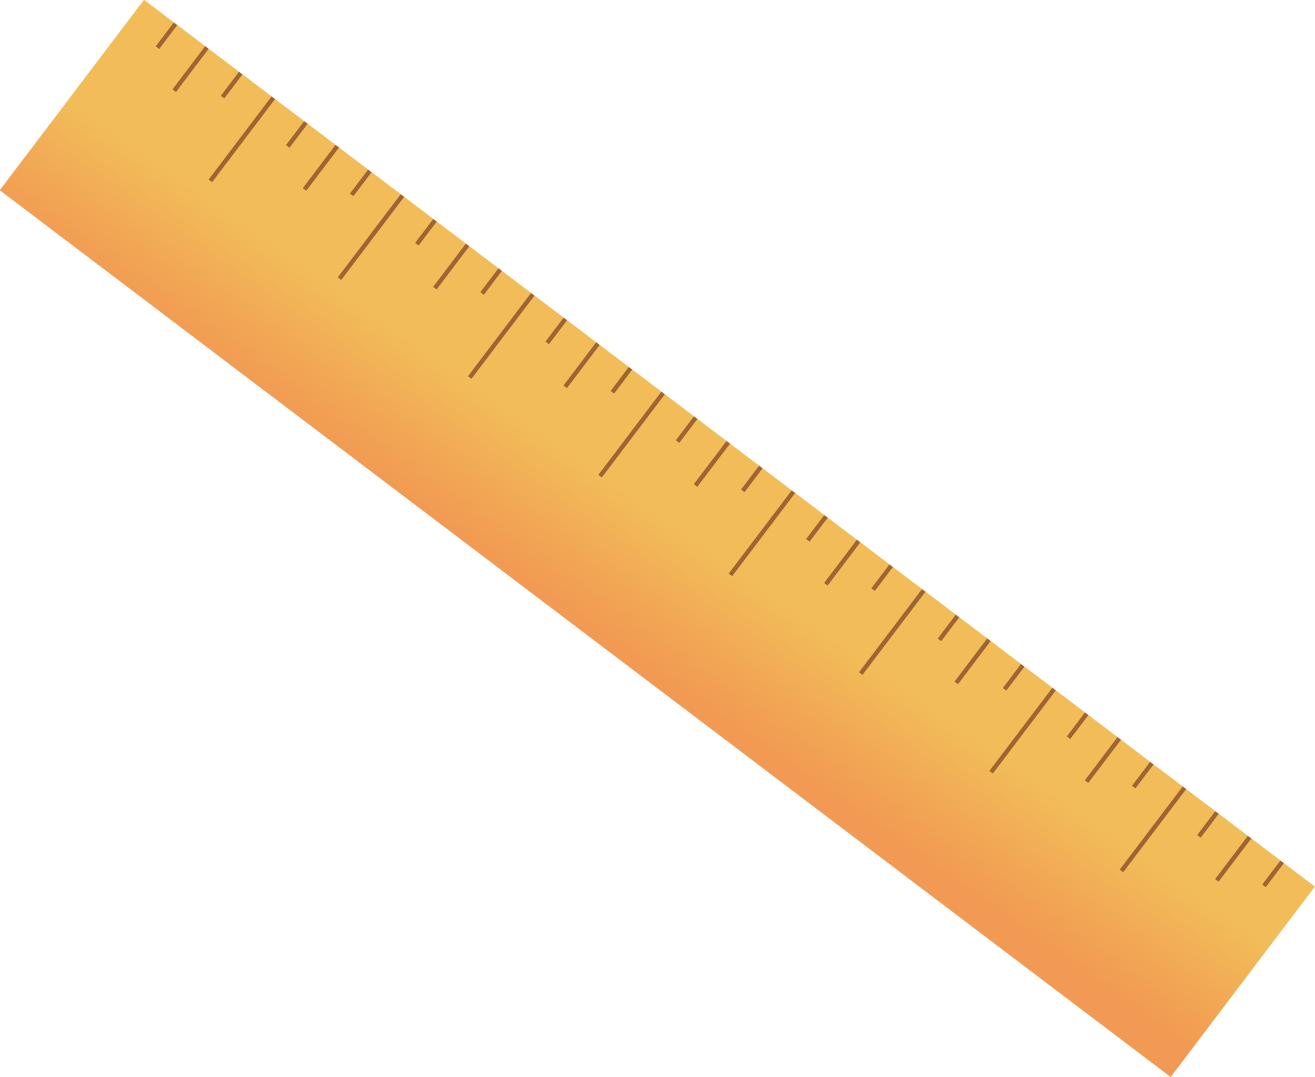 Image result for scale ruler on transparent background